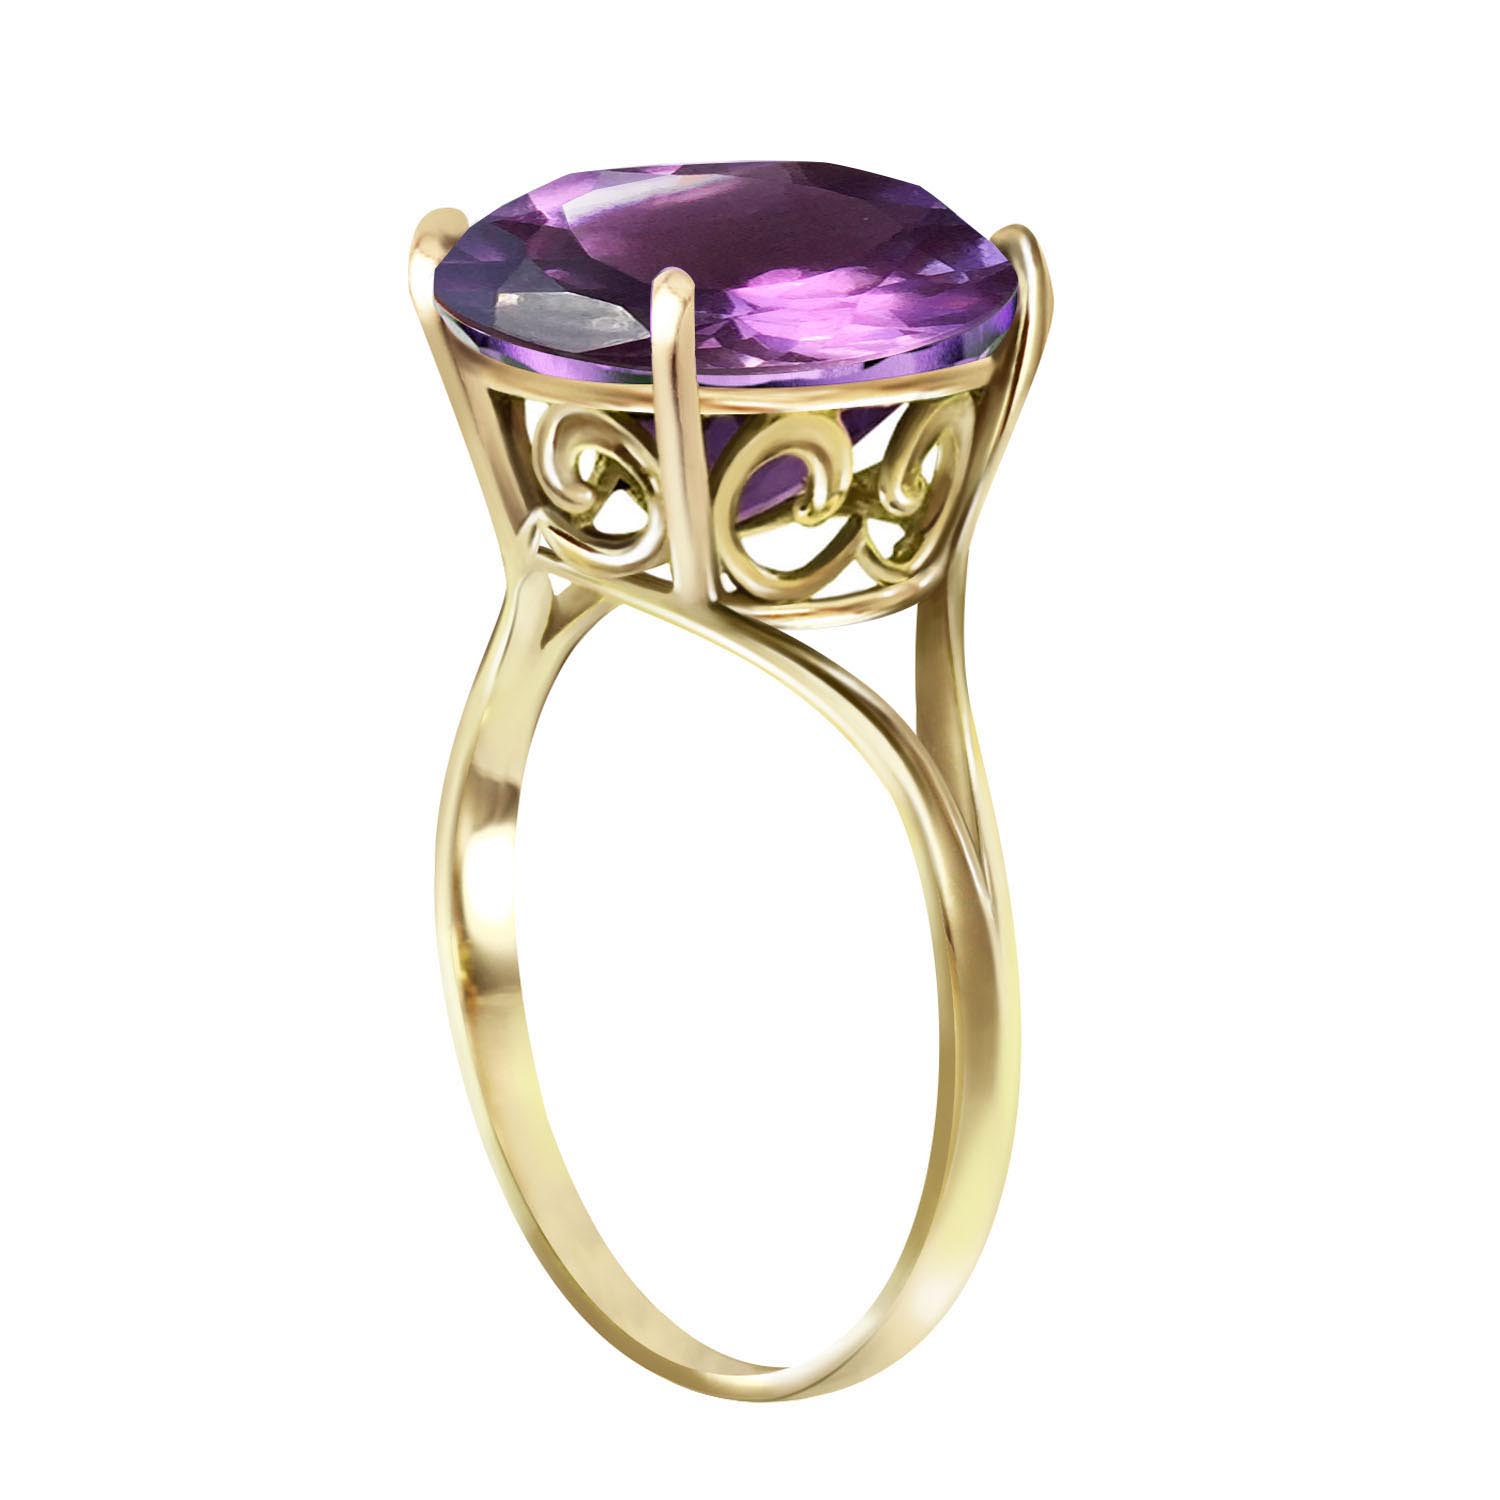 Round Cut Amethyst Ring 5.5 ct in 9ct Gold